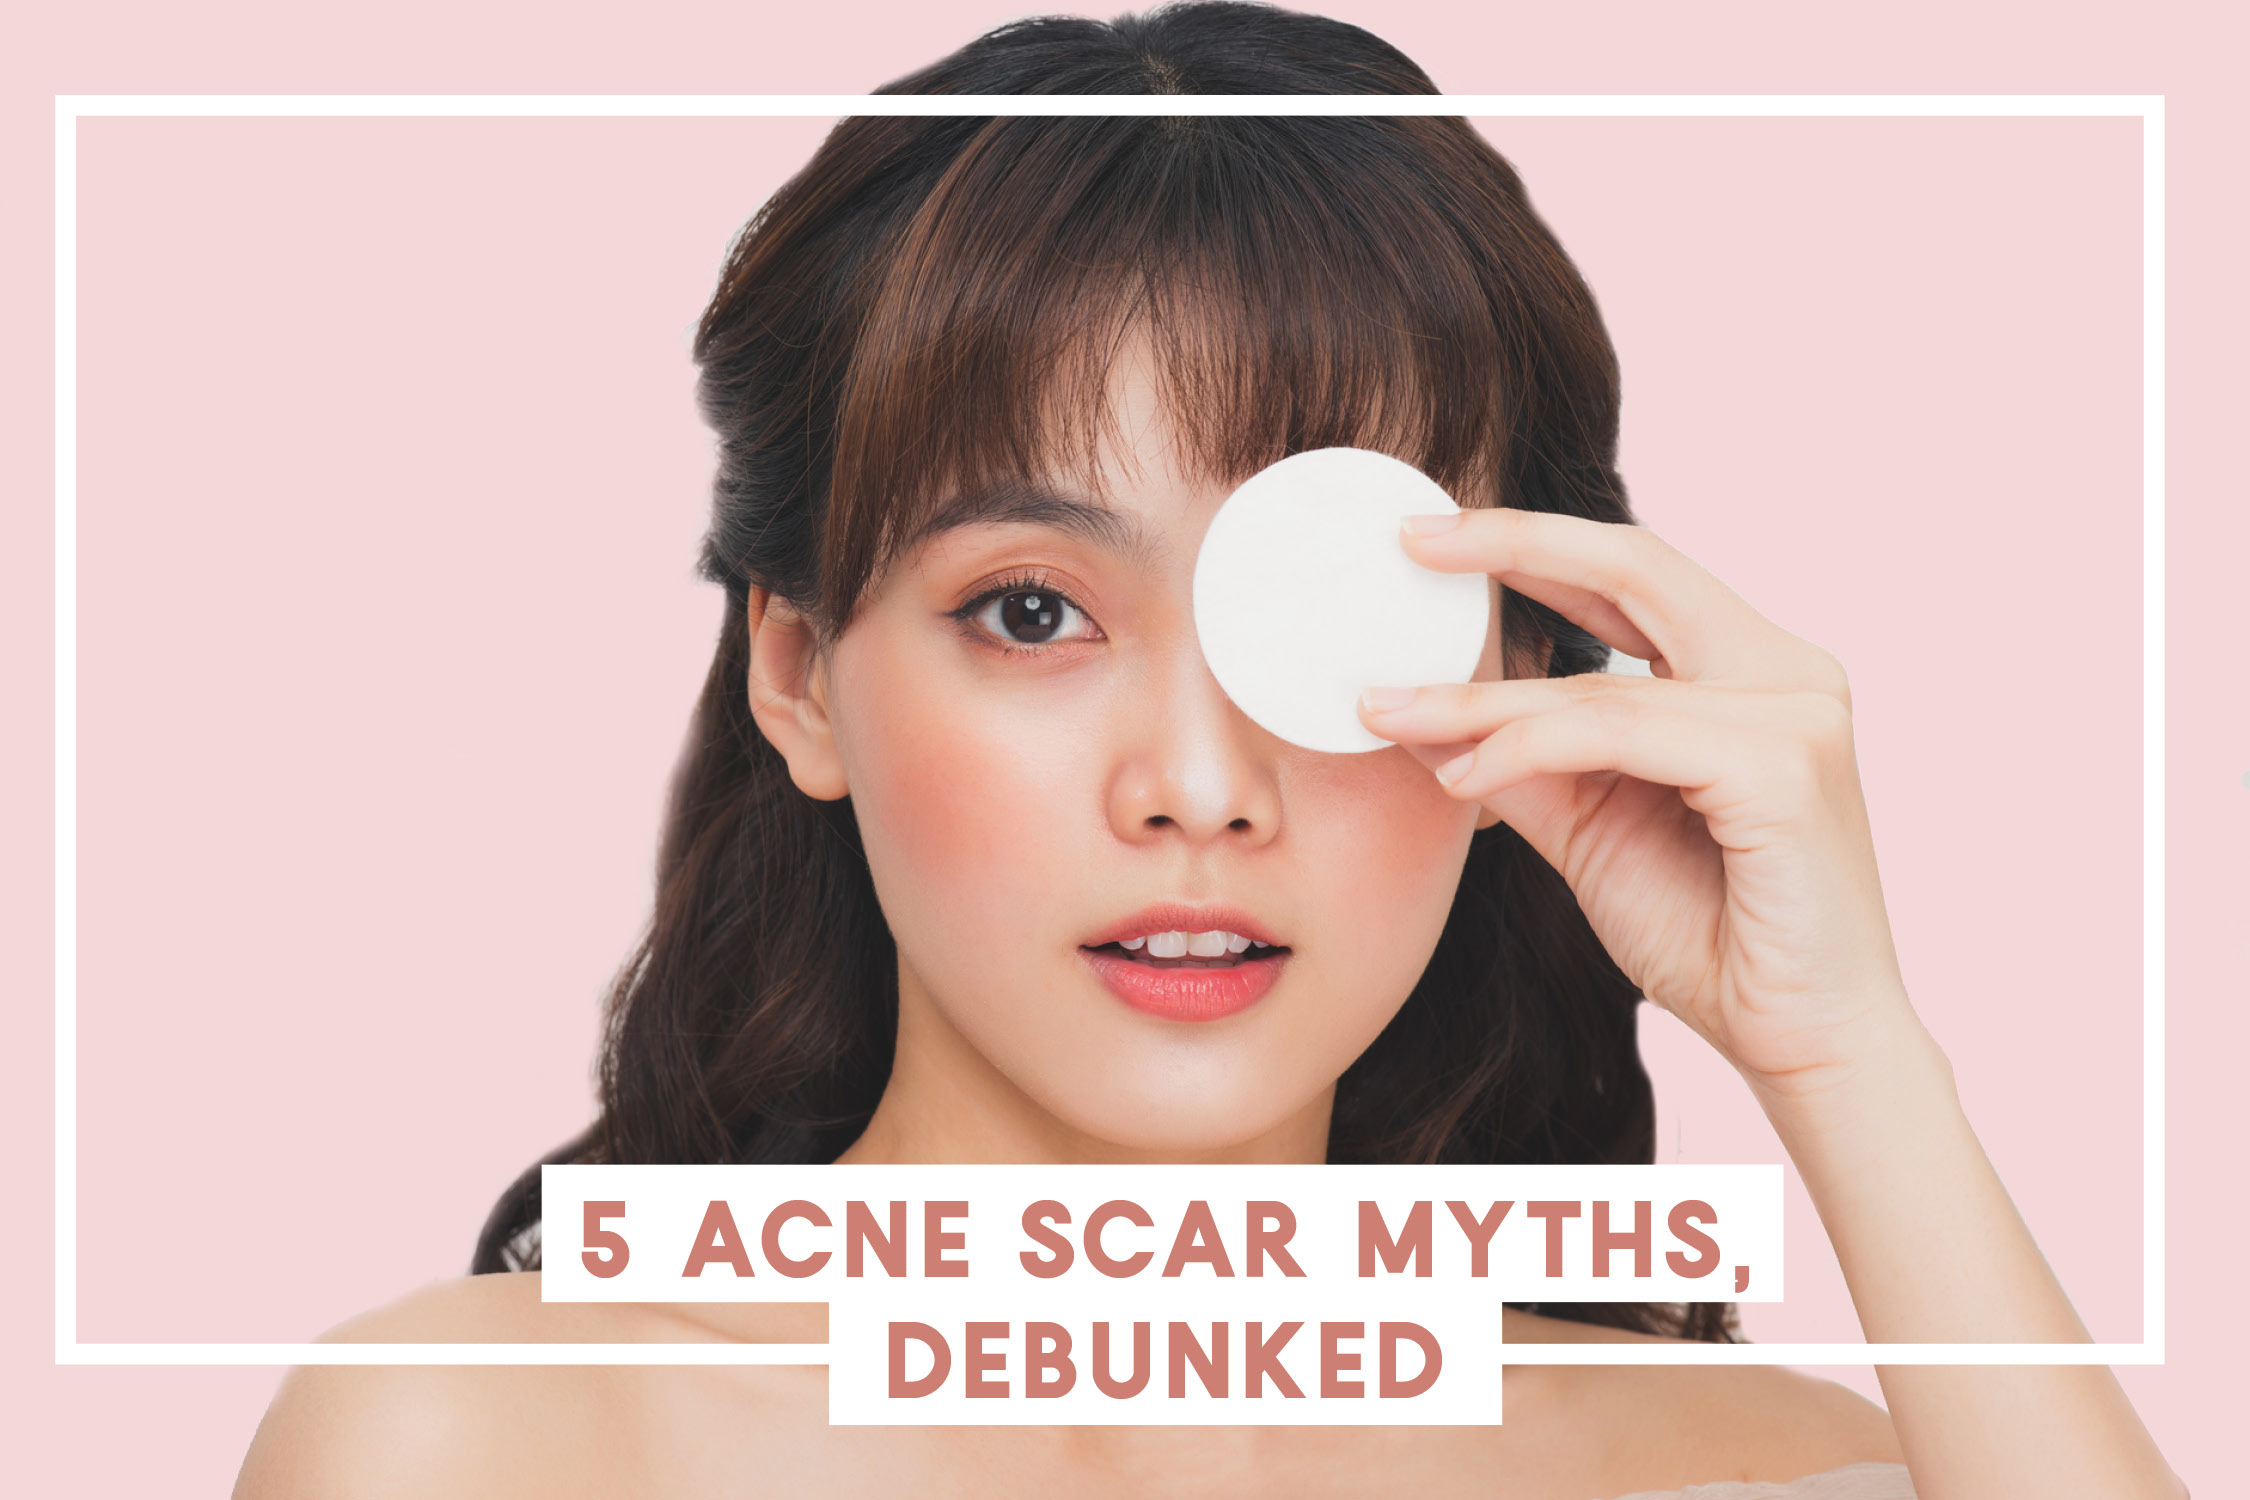 5 Acne Scar Myths Debunked